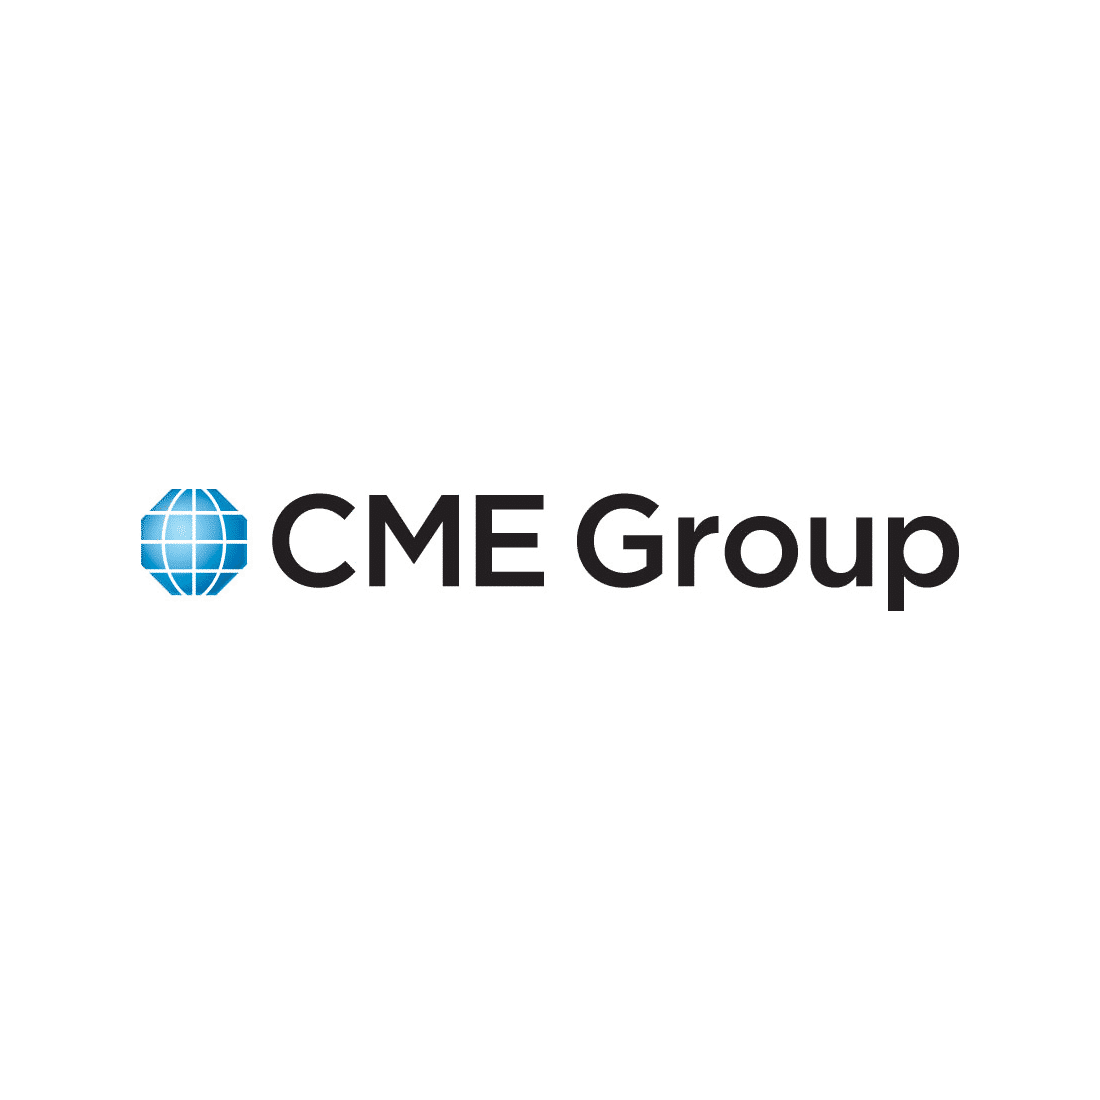 Historically Low Levels of Volatility Blamed for Weak Q2 Results at CME